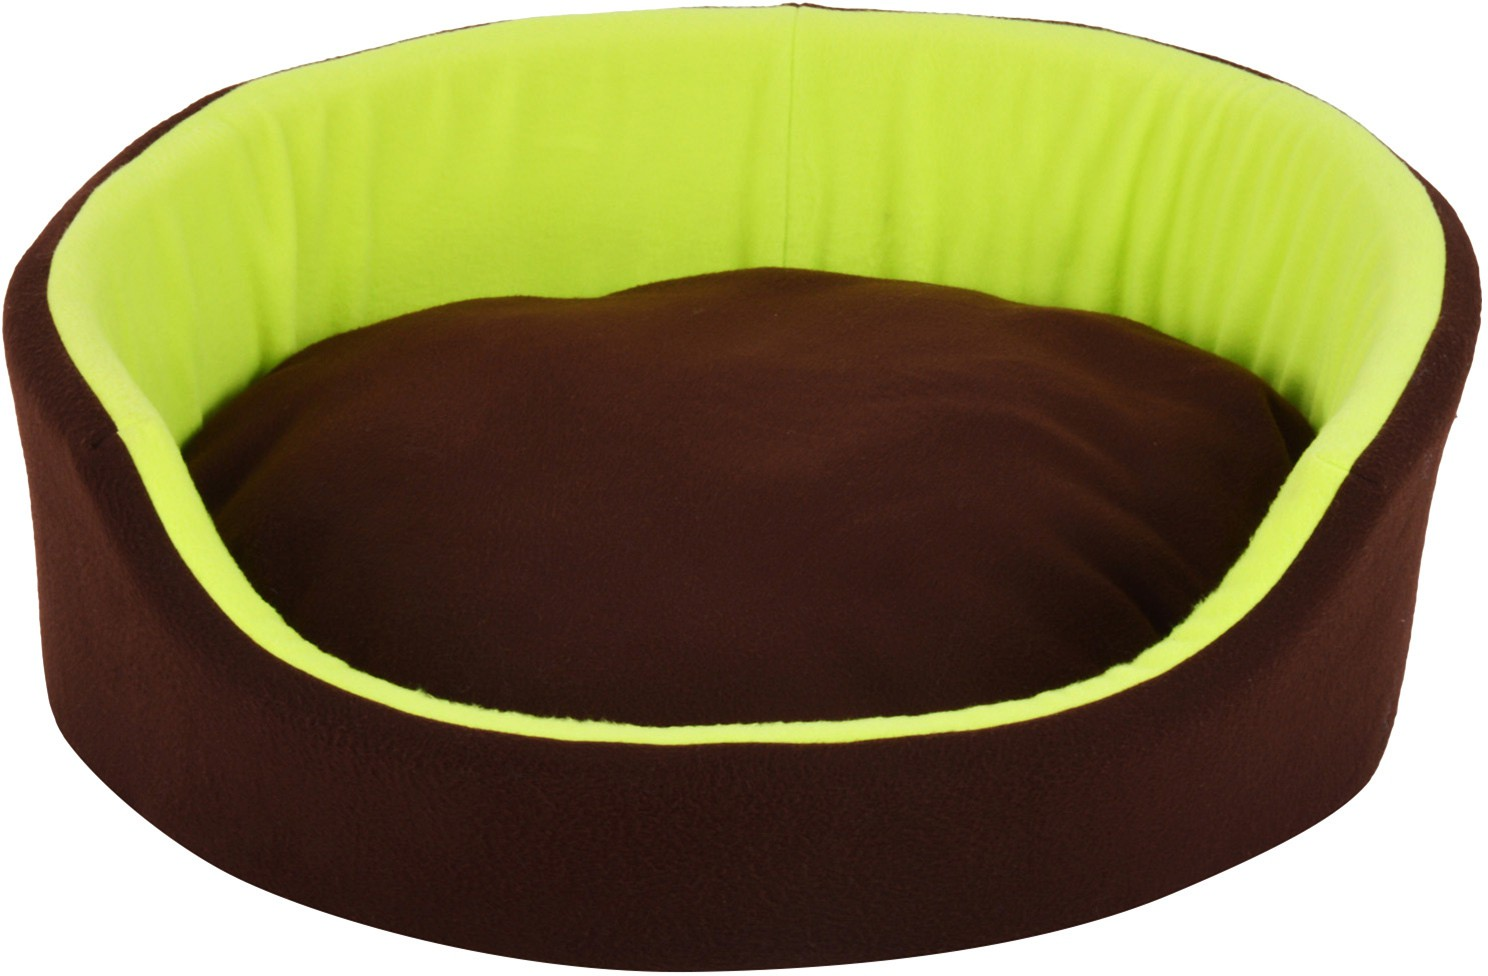 View Fluffy FPWFRBM1 M Pet Bed(Brown, Green) Furniture (Fluffy)